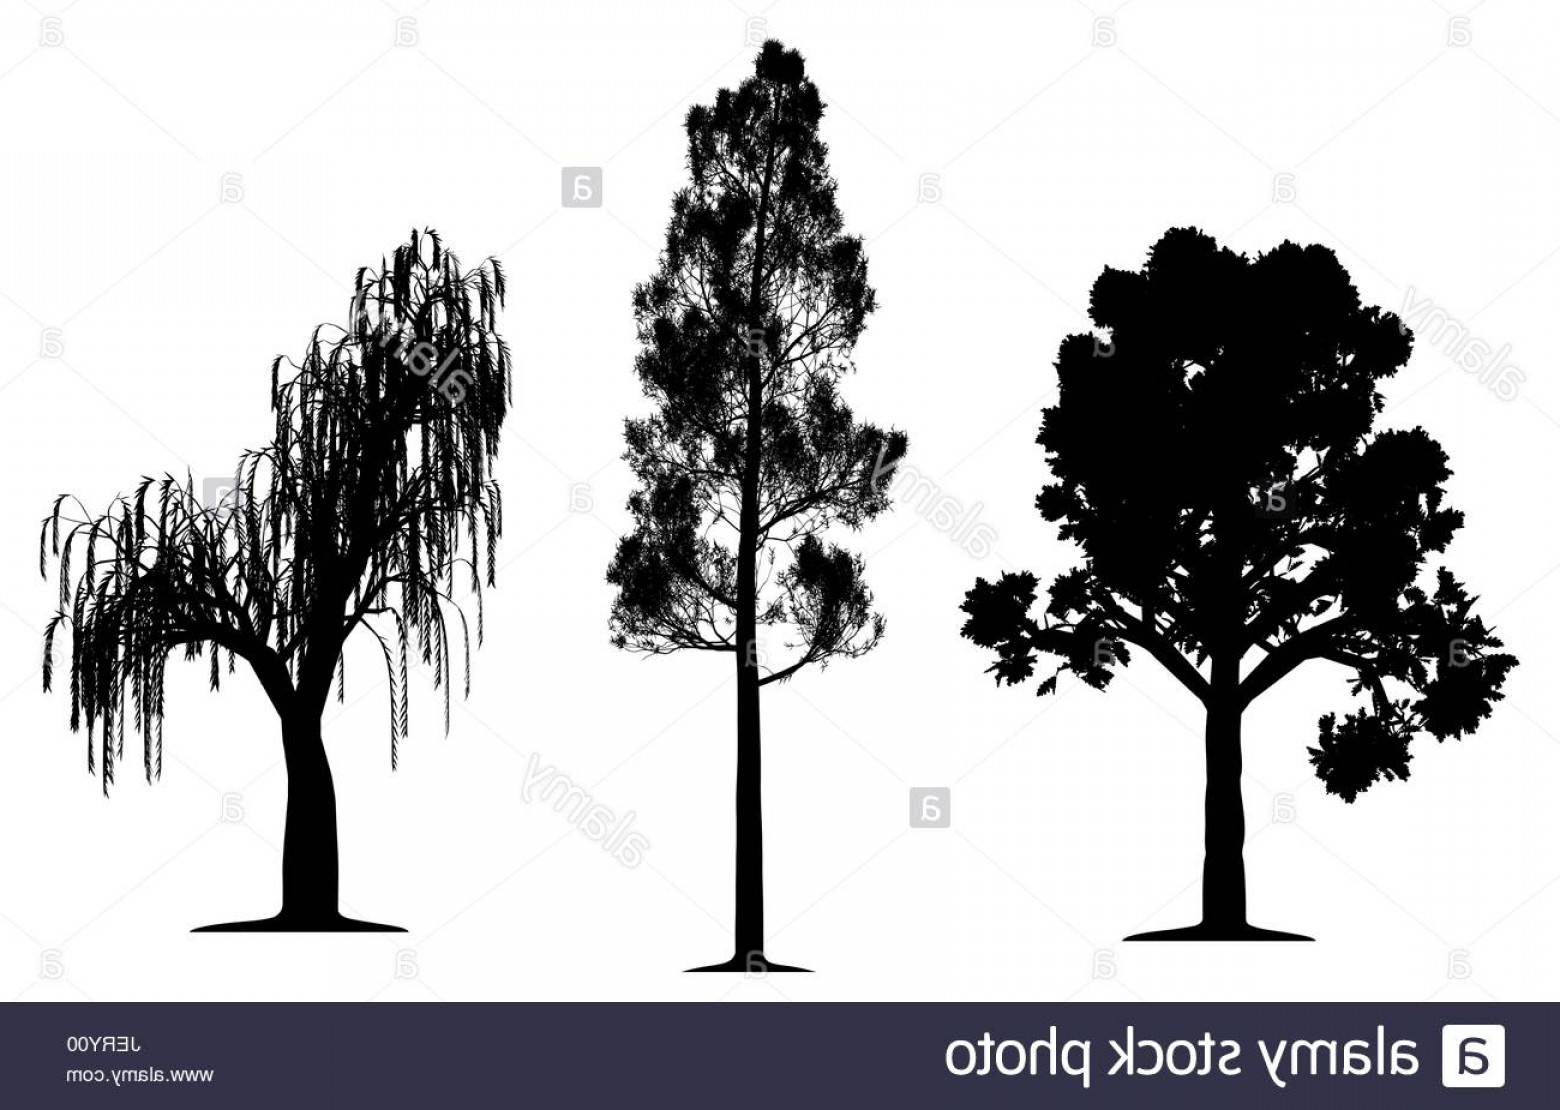 Oak Tree Silhouette Vector Graphics: Stock Photo Tree Trees Pine Oak Silhouette Weeping Willow Vector Forest Leaf